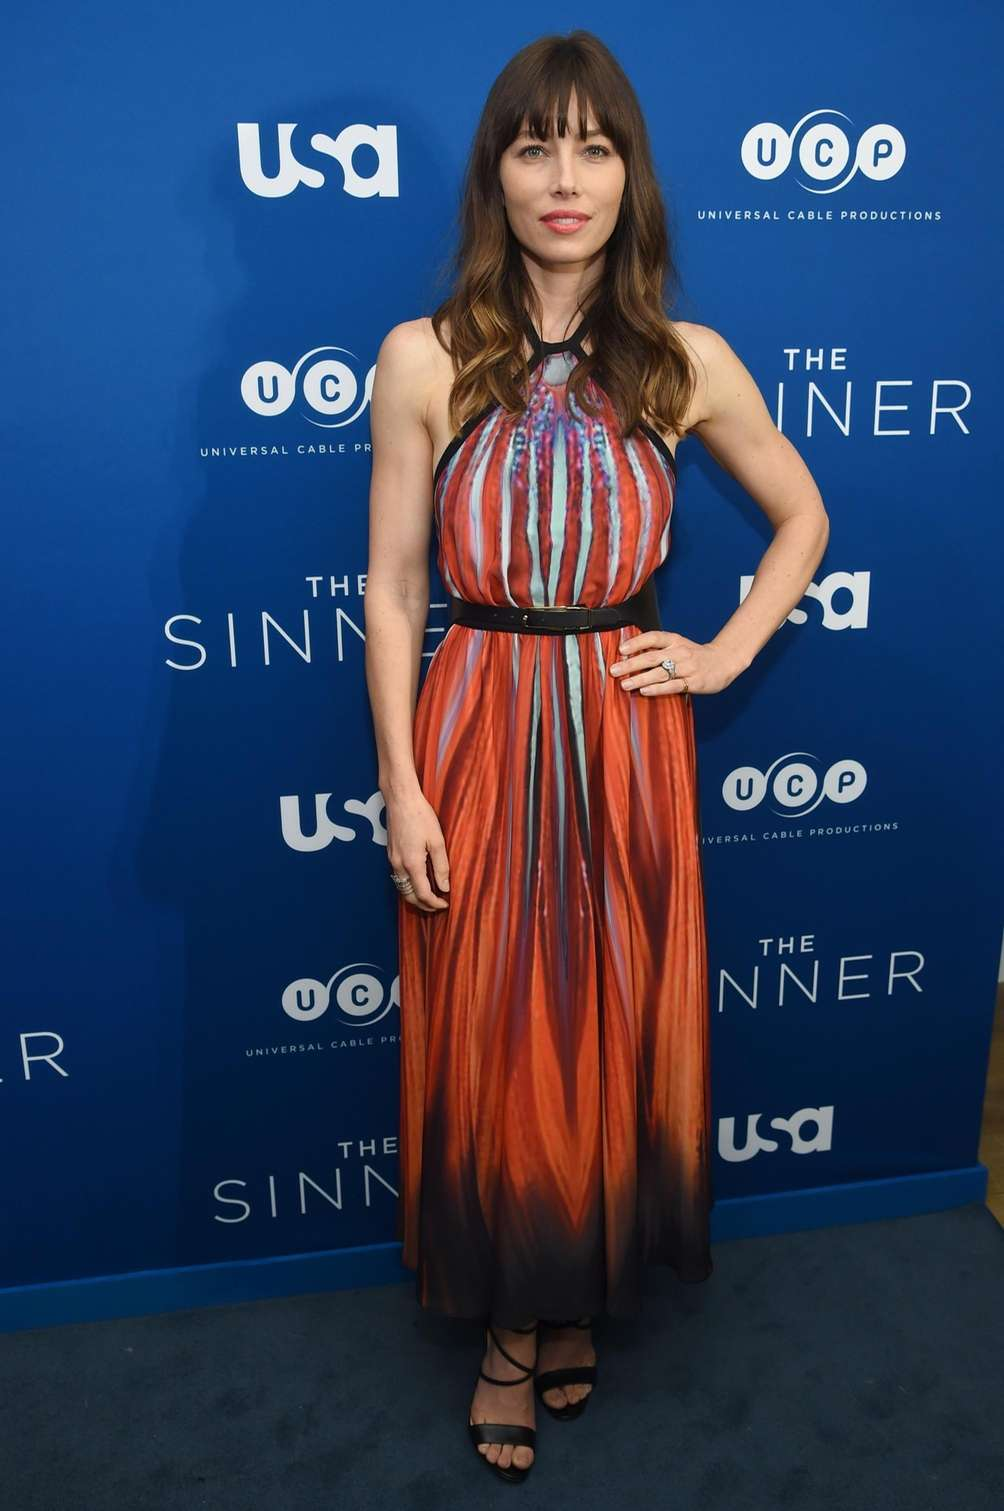 Jessica Biel attends a screening of USA Network's